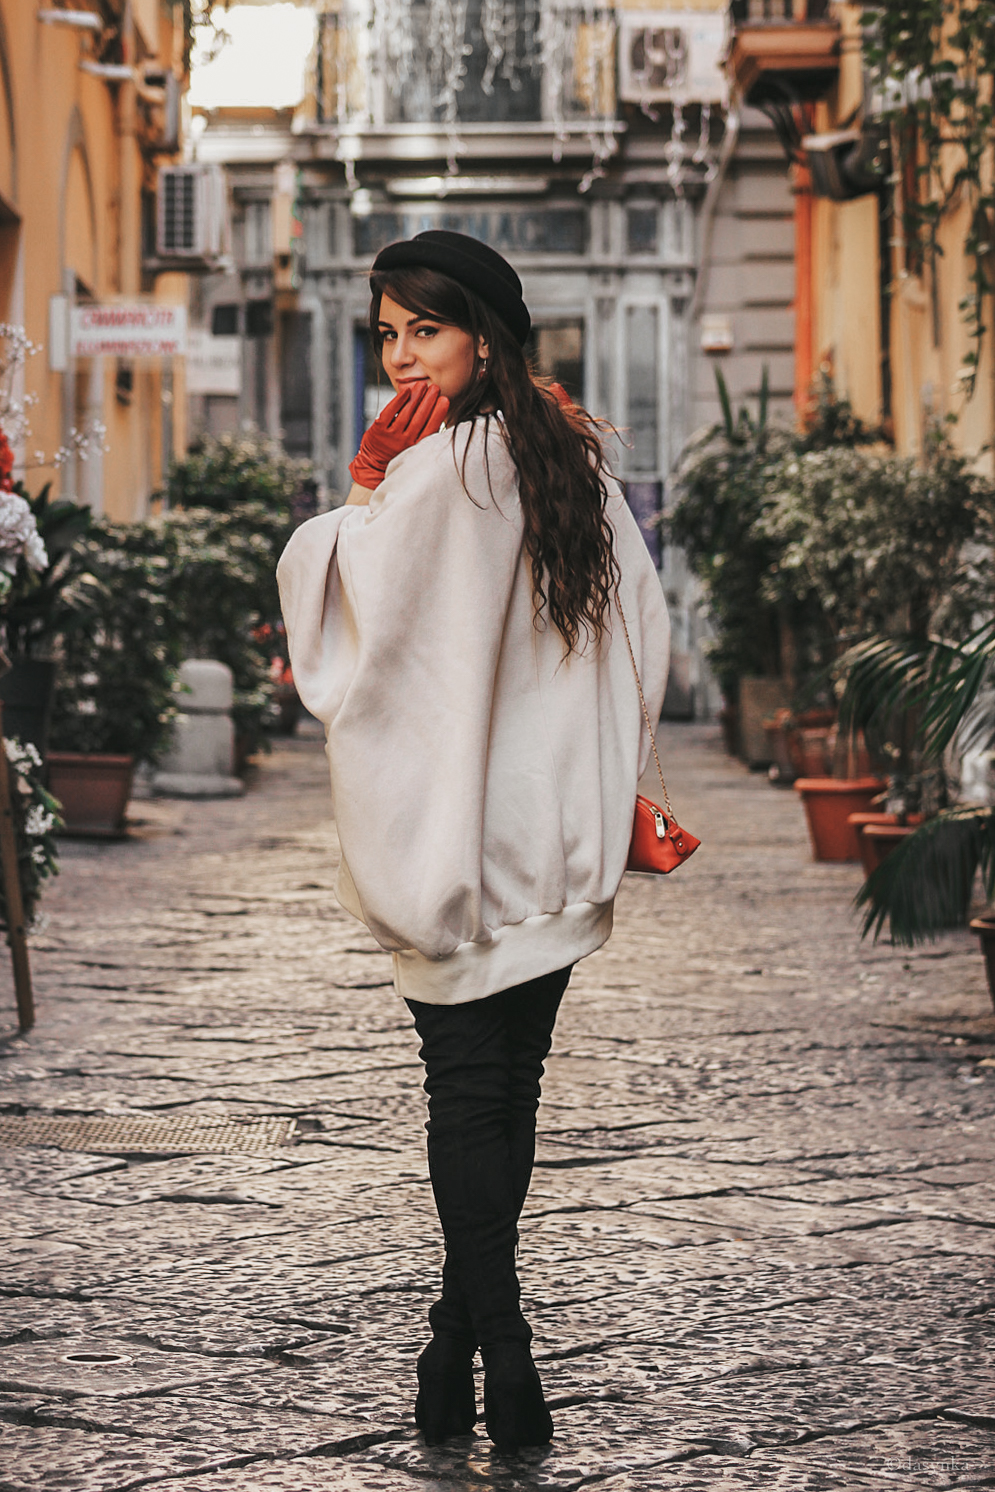 dasynka-fashion-blog-blogger-shooting-model-naples-boots-high-gloves-red-harrods-sweater-bag-hat-pochette-nutcracker-christmas-victoria-secret-white-oversize-overknee-black-ideas-outfit-look-style-chic-elegant-festive